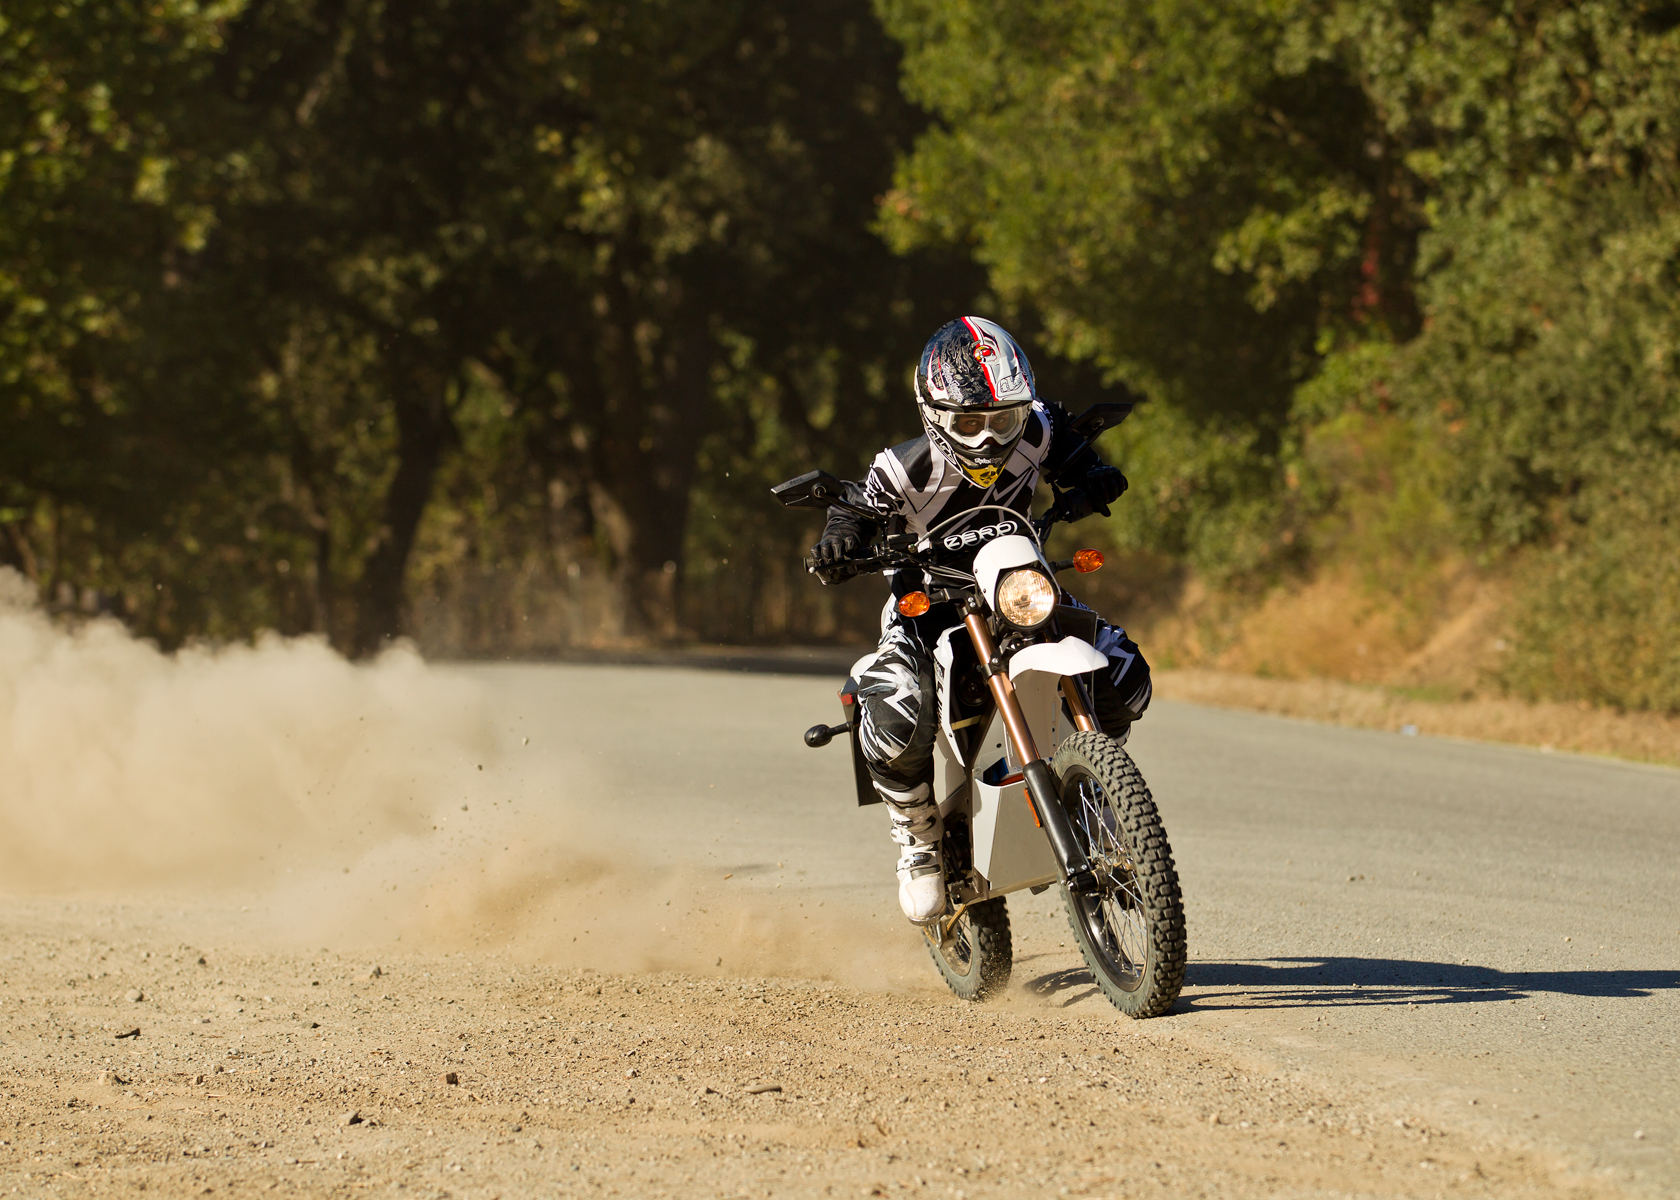 '.2012 Zero X Electric Motorcycle: Charging Down Dirt Road.'